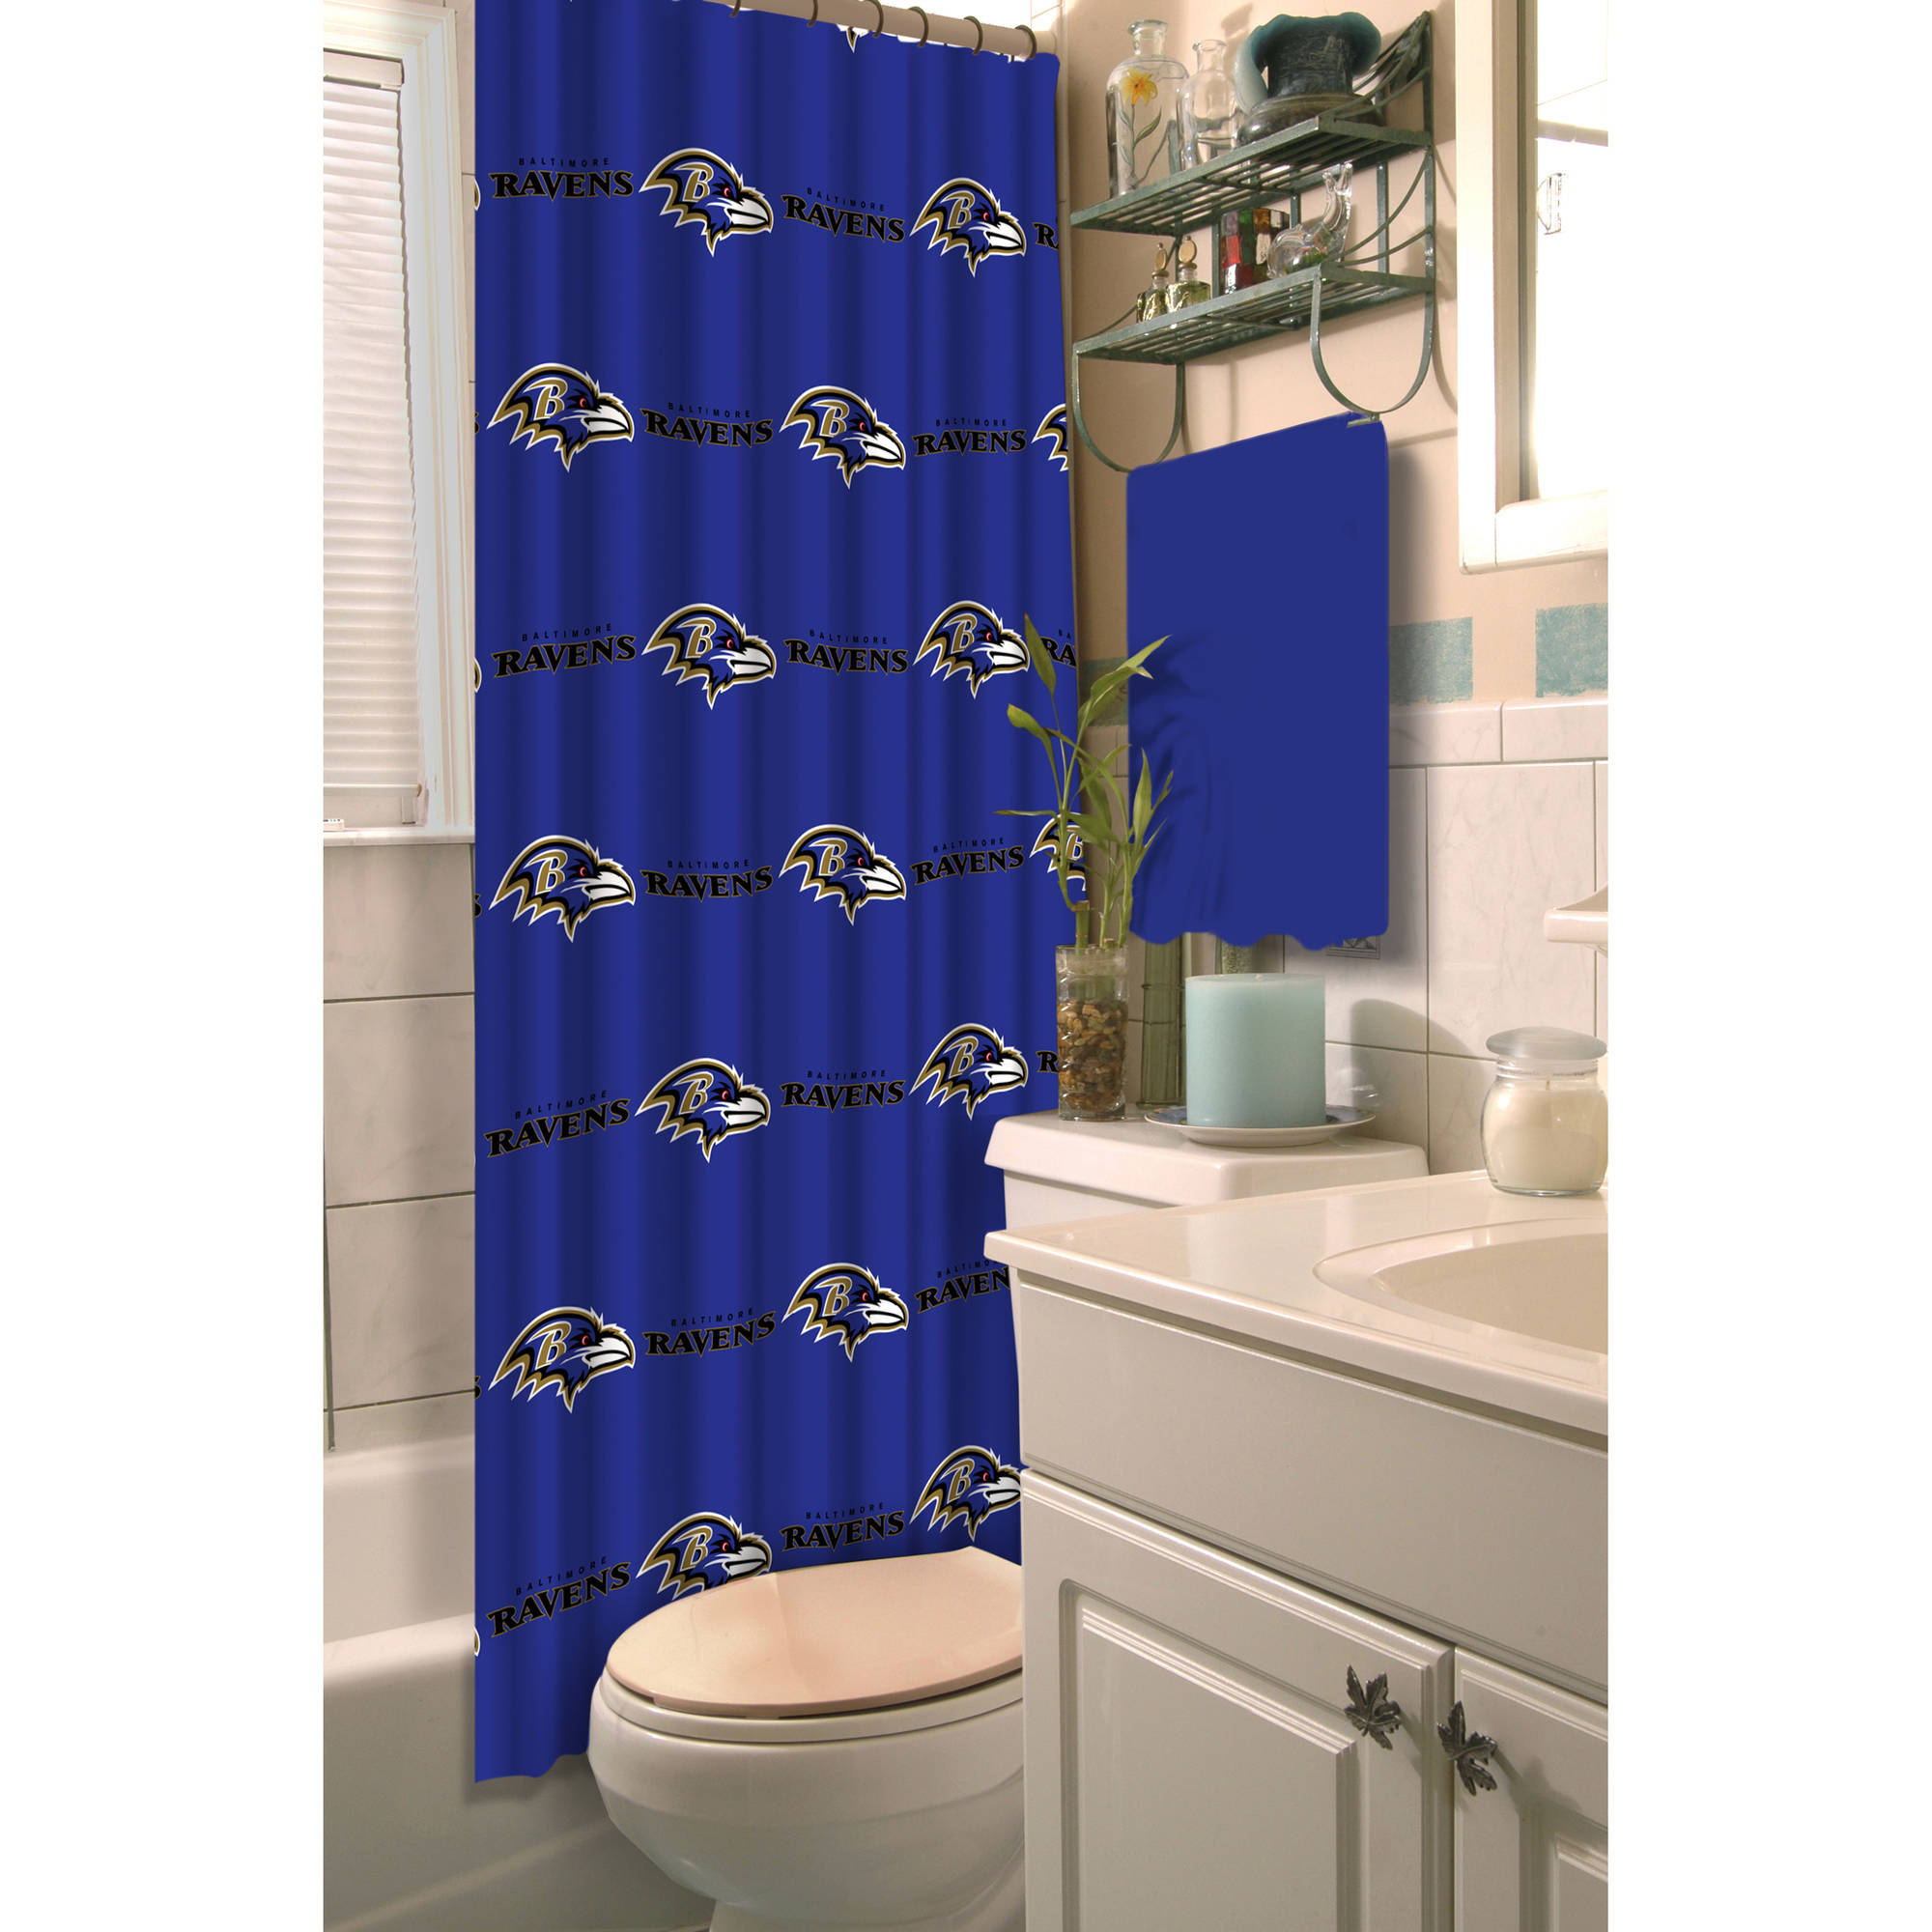 NFL Baltimore Ravens Decorative Bath Collection Shower Curtain